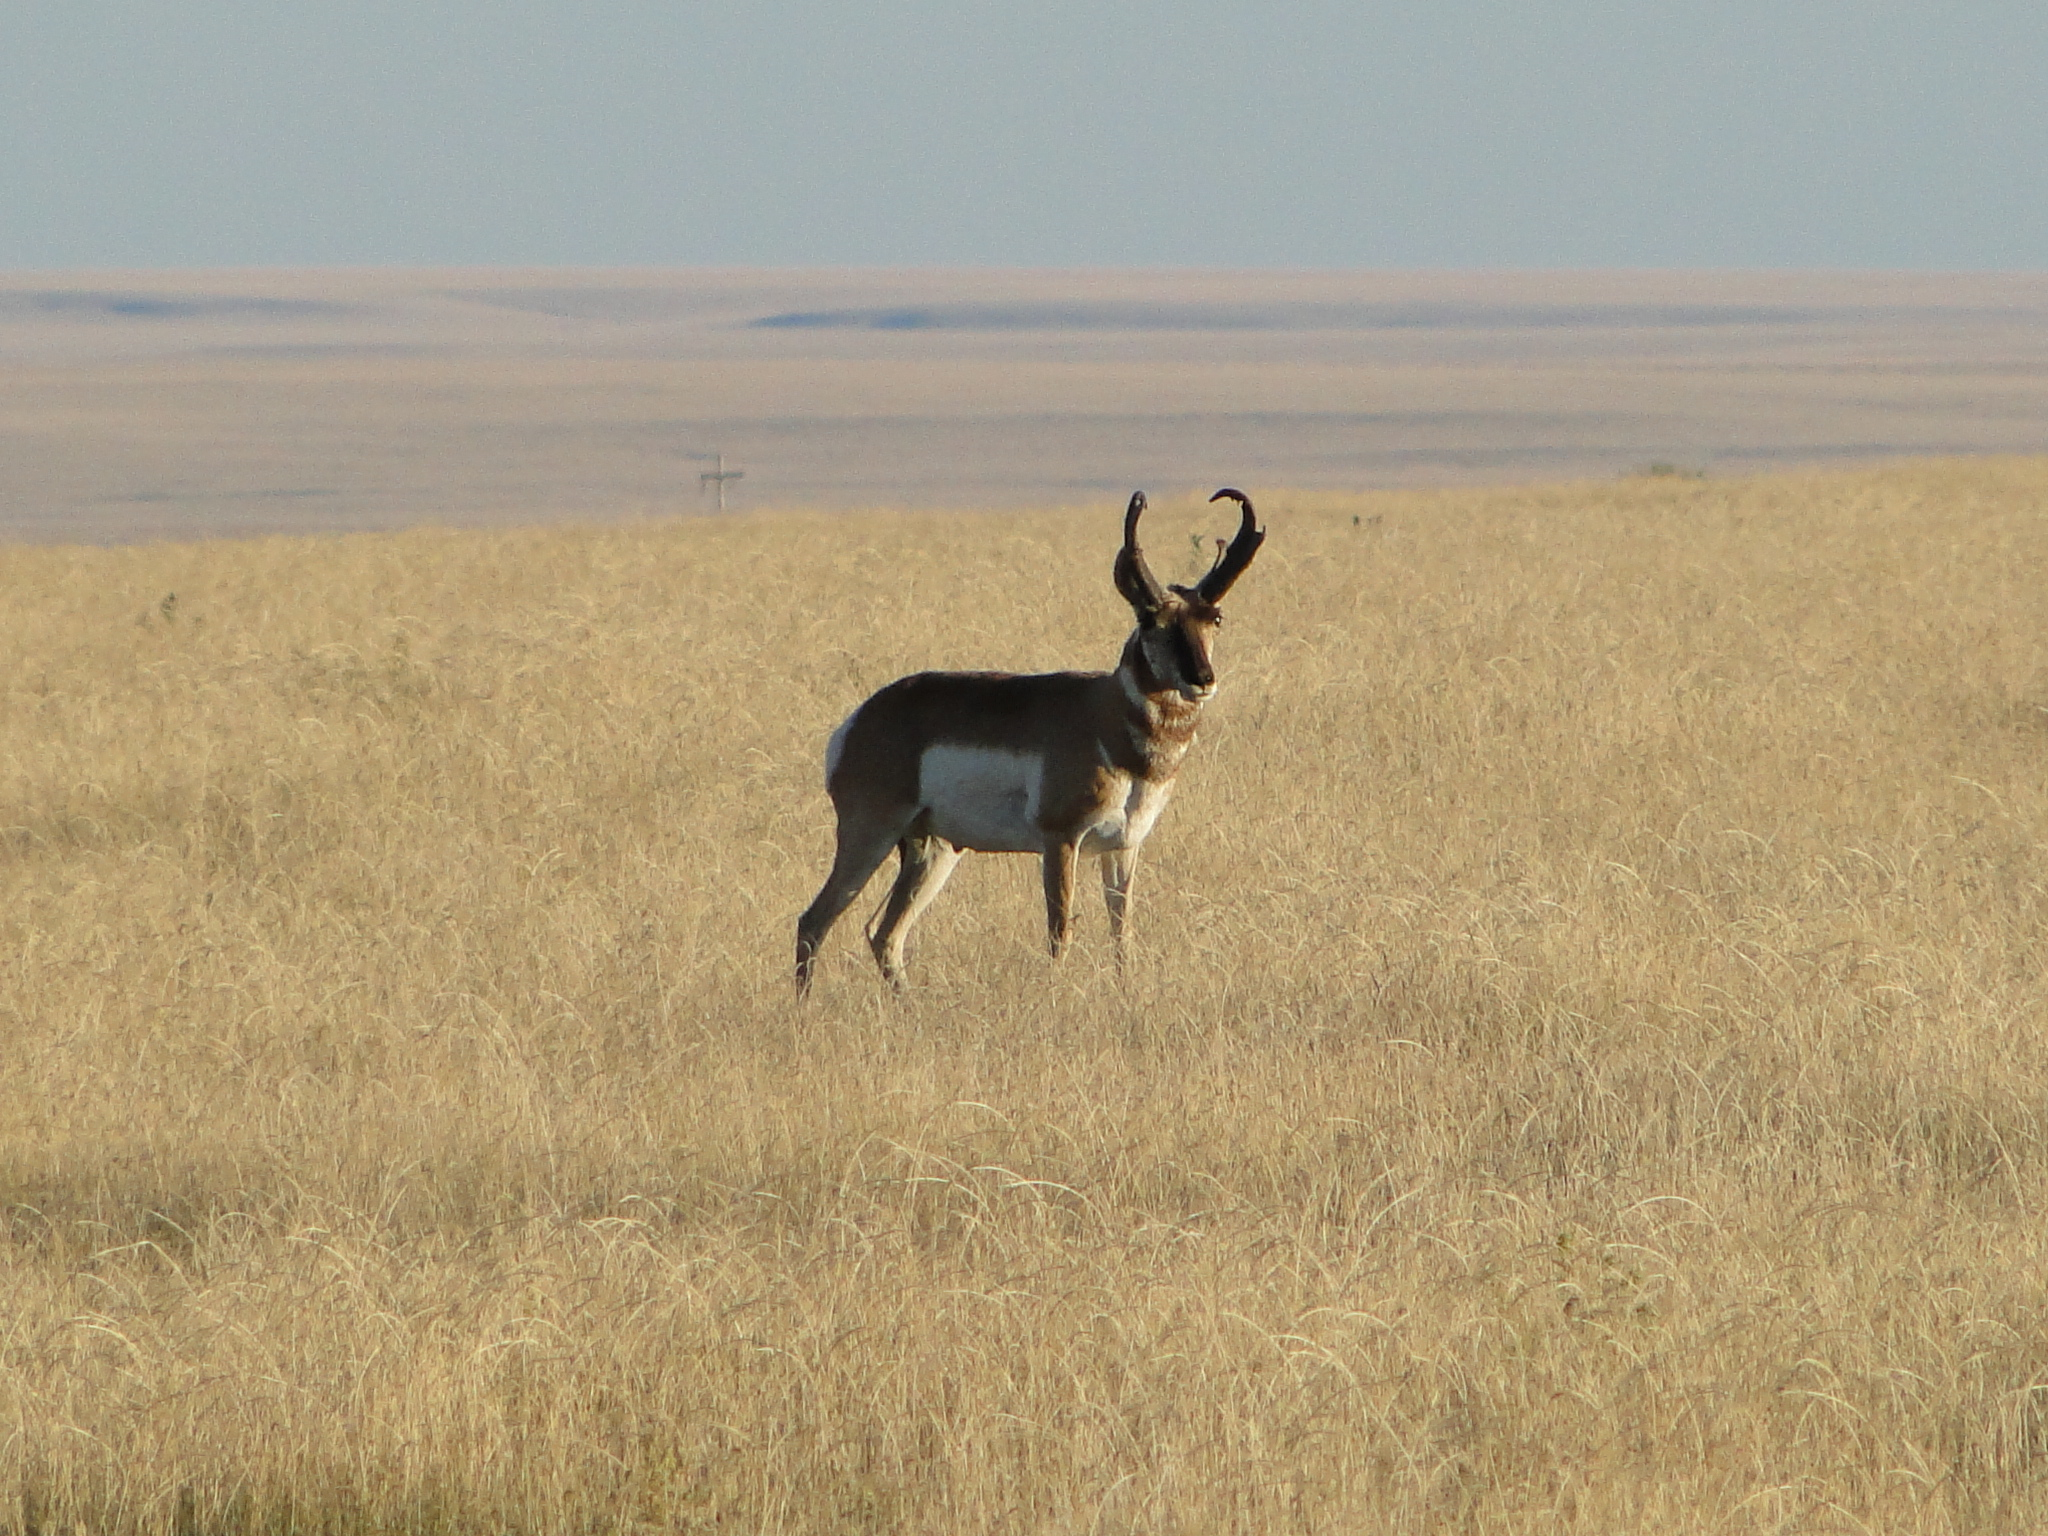 Pronghorn antilope at Cimmaron